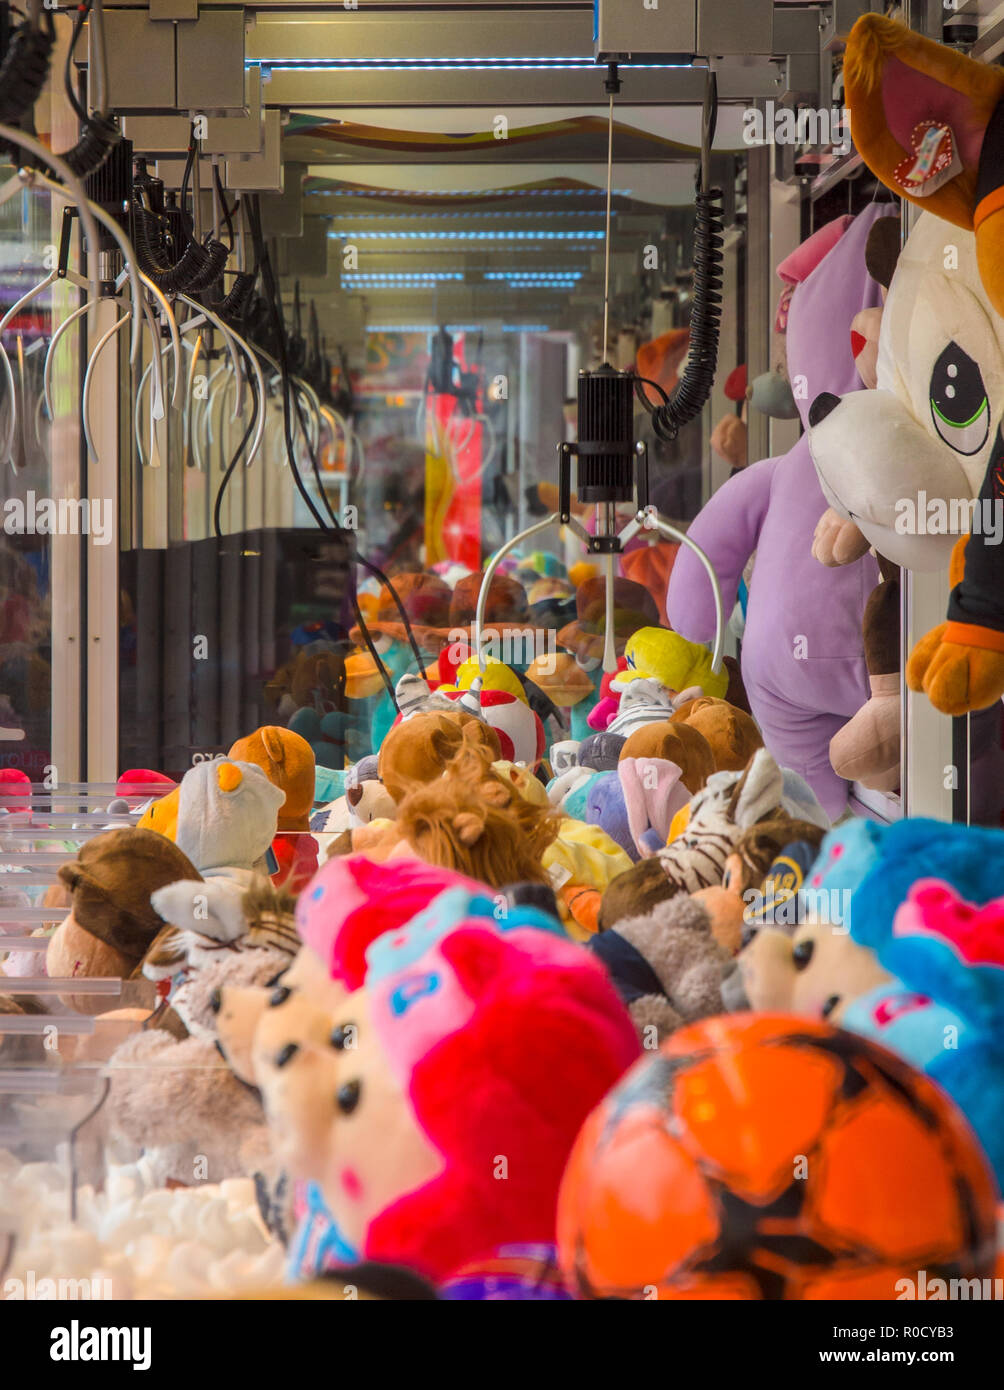 Claw crane with soft cuddly toys in an arcade machine - Stock Image